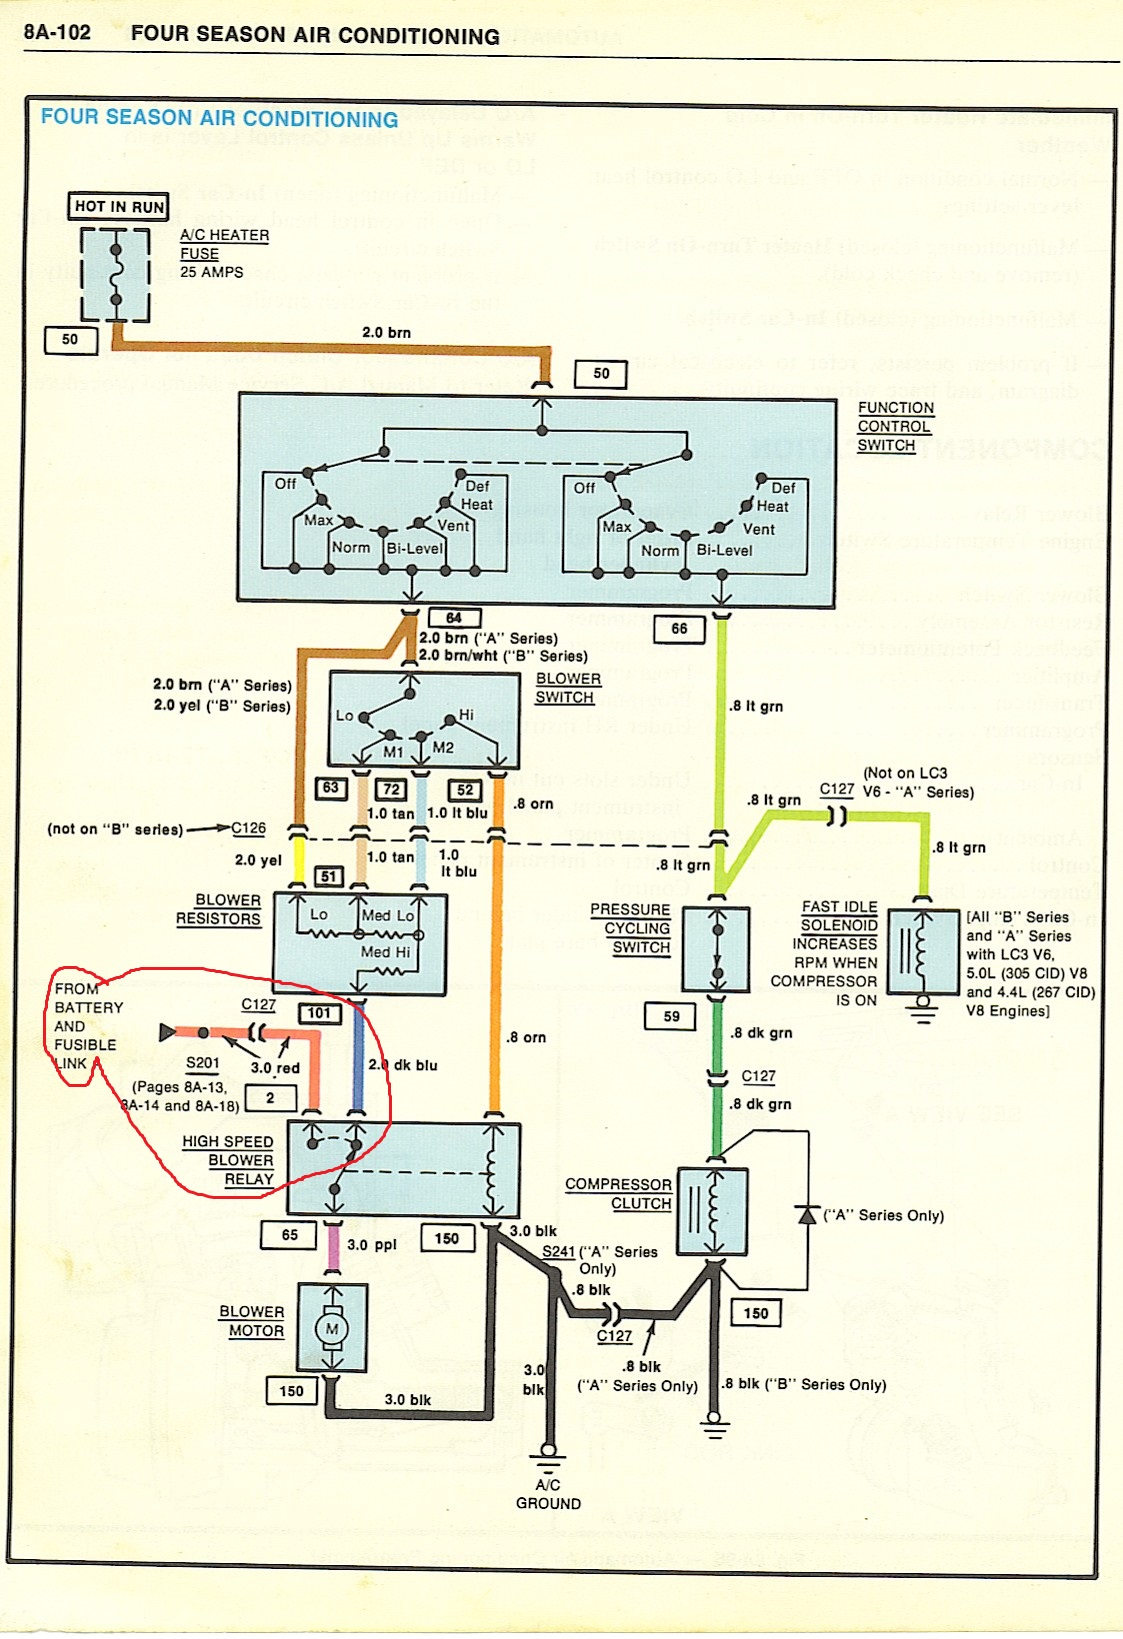 1982 chevy c10 wiring diagram air conditioning 85 blower motor wiring gbodyforum  78  88 general motors a g  85 blower motor wiring gbodyforum